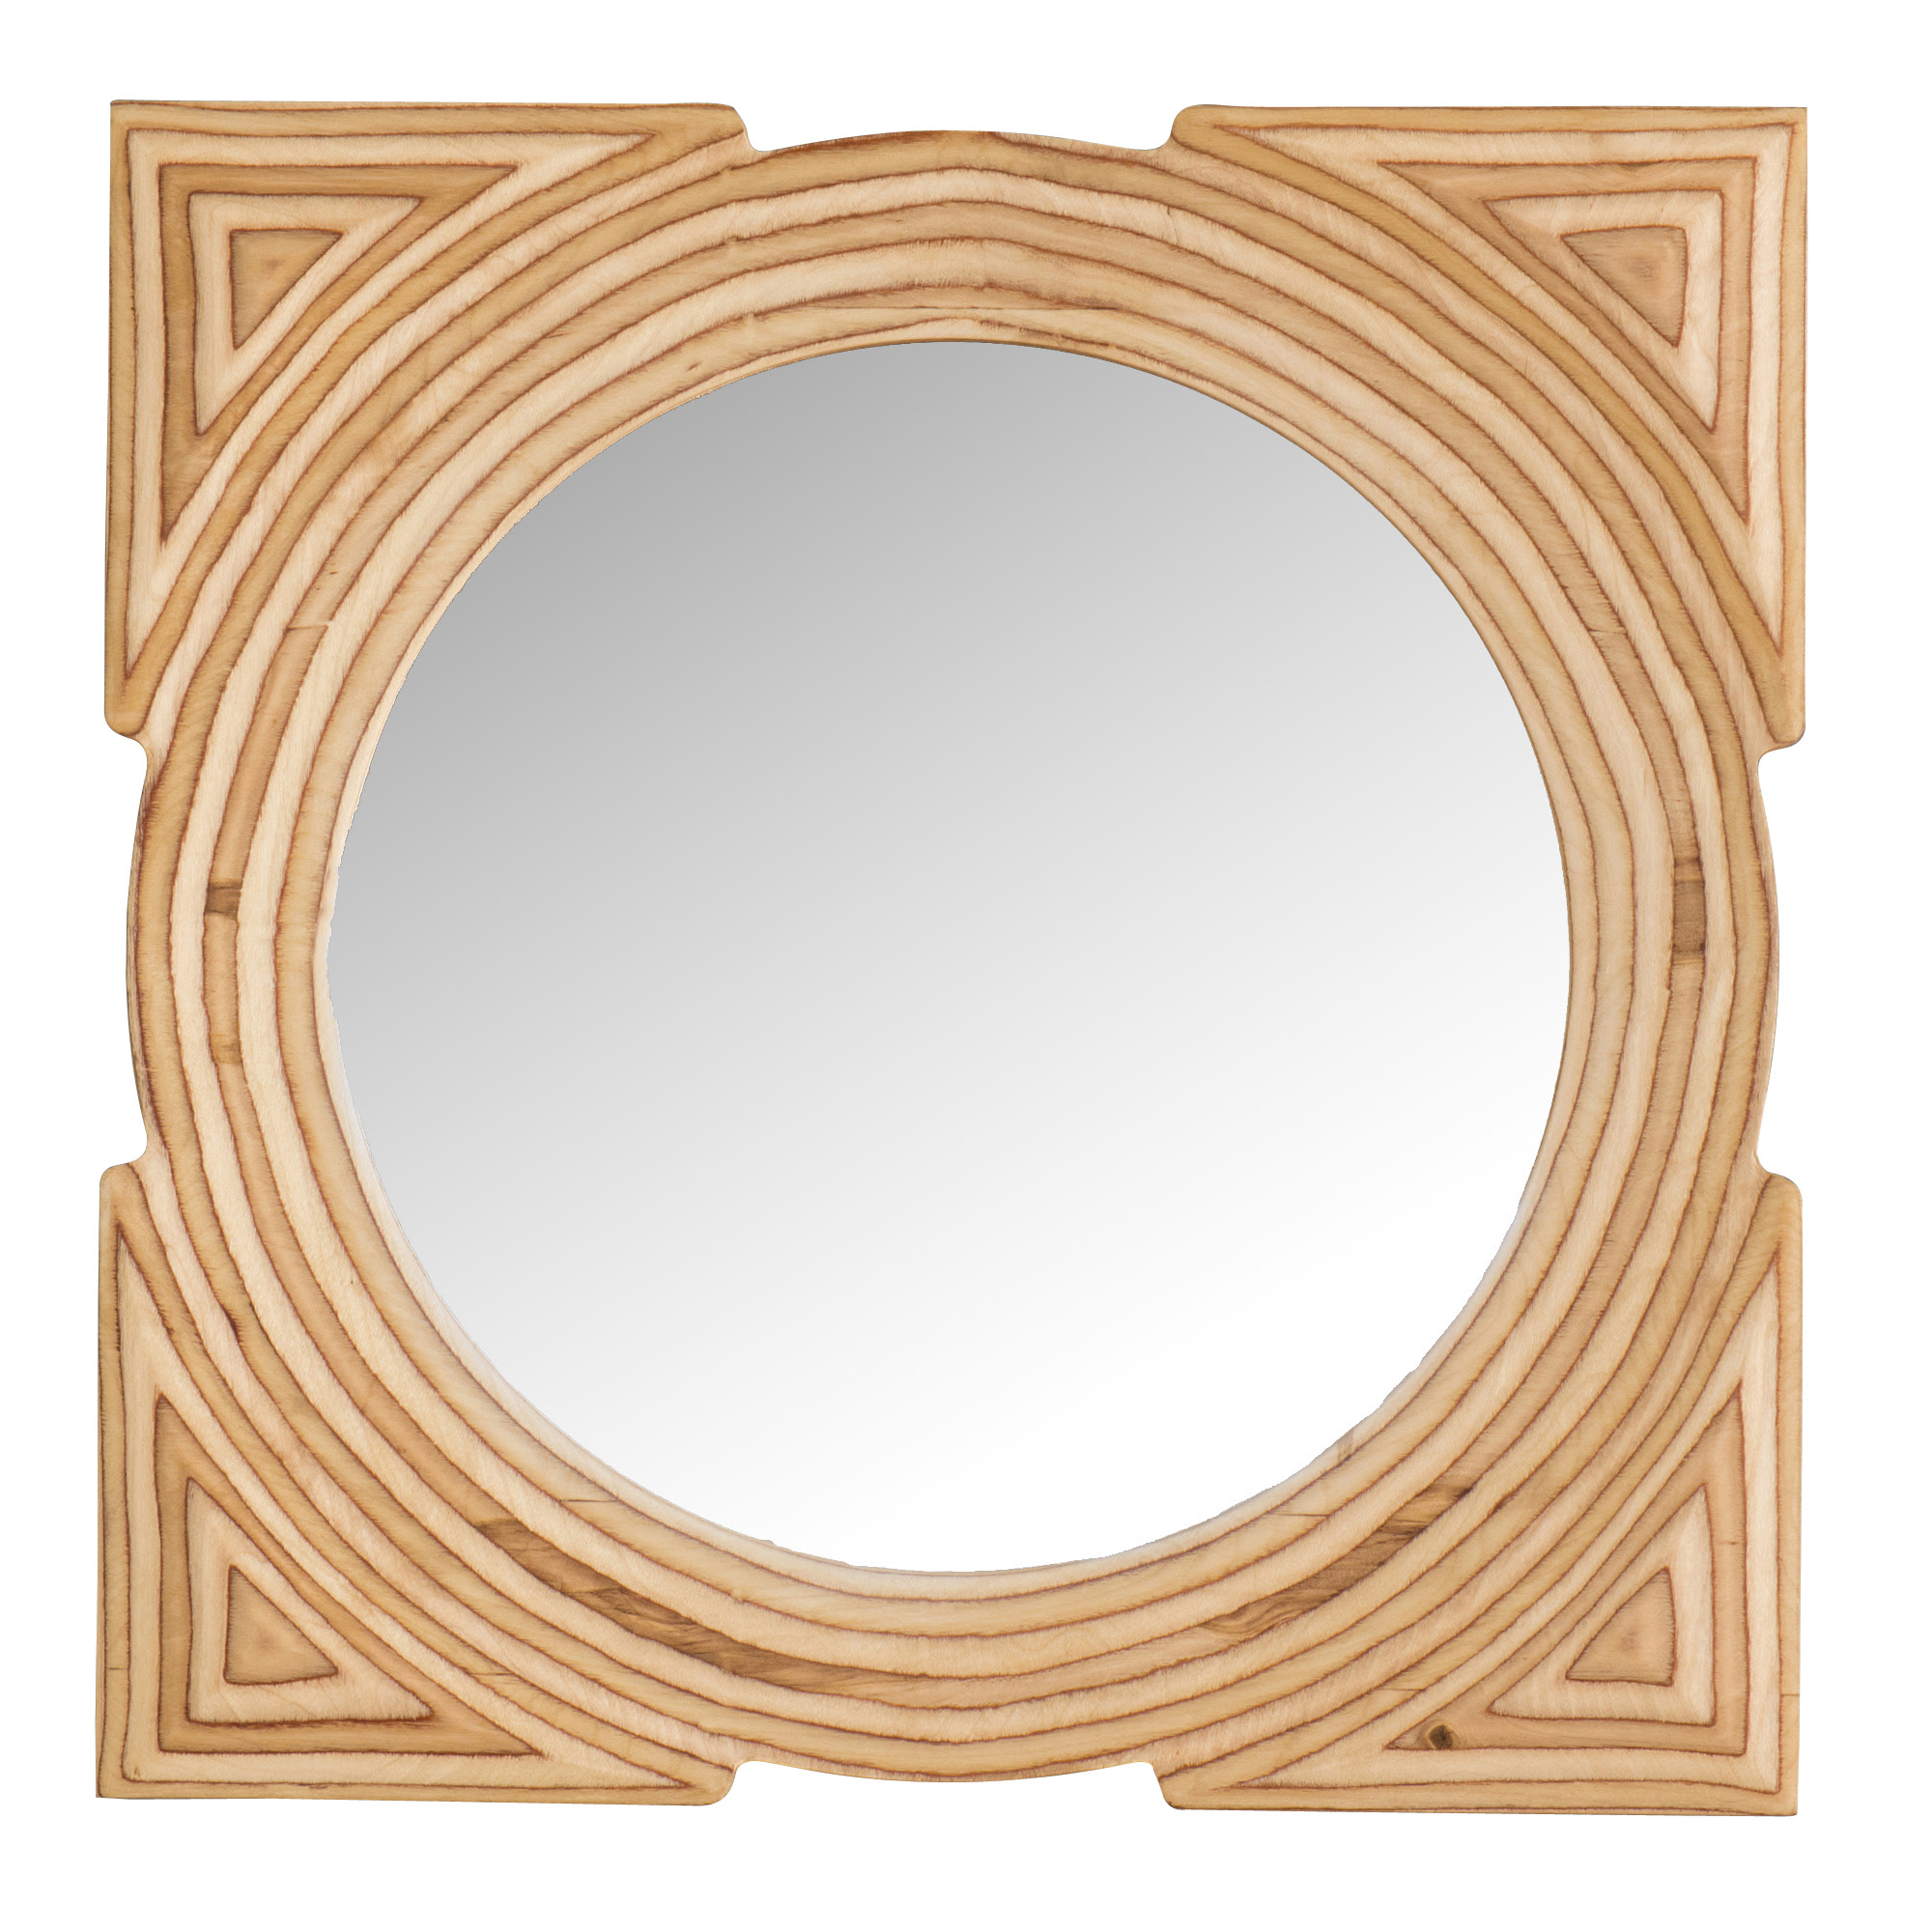 Coastal chic mirrors with decorative mirrors online for Decorative mirrors